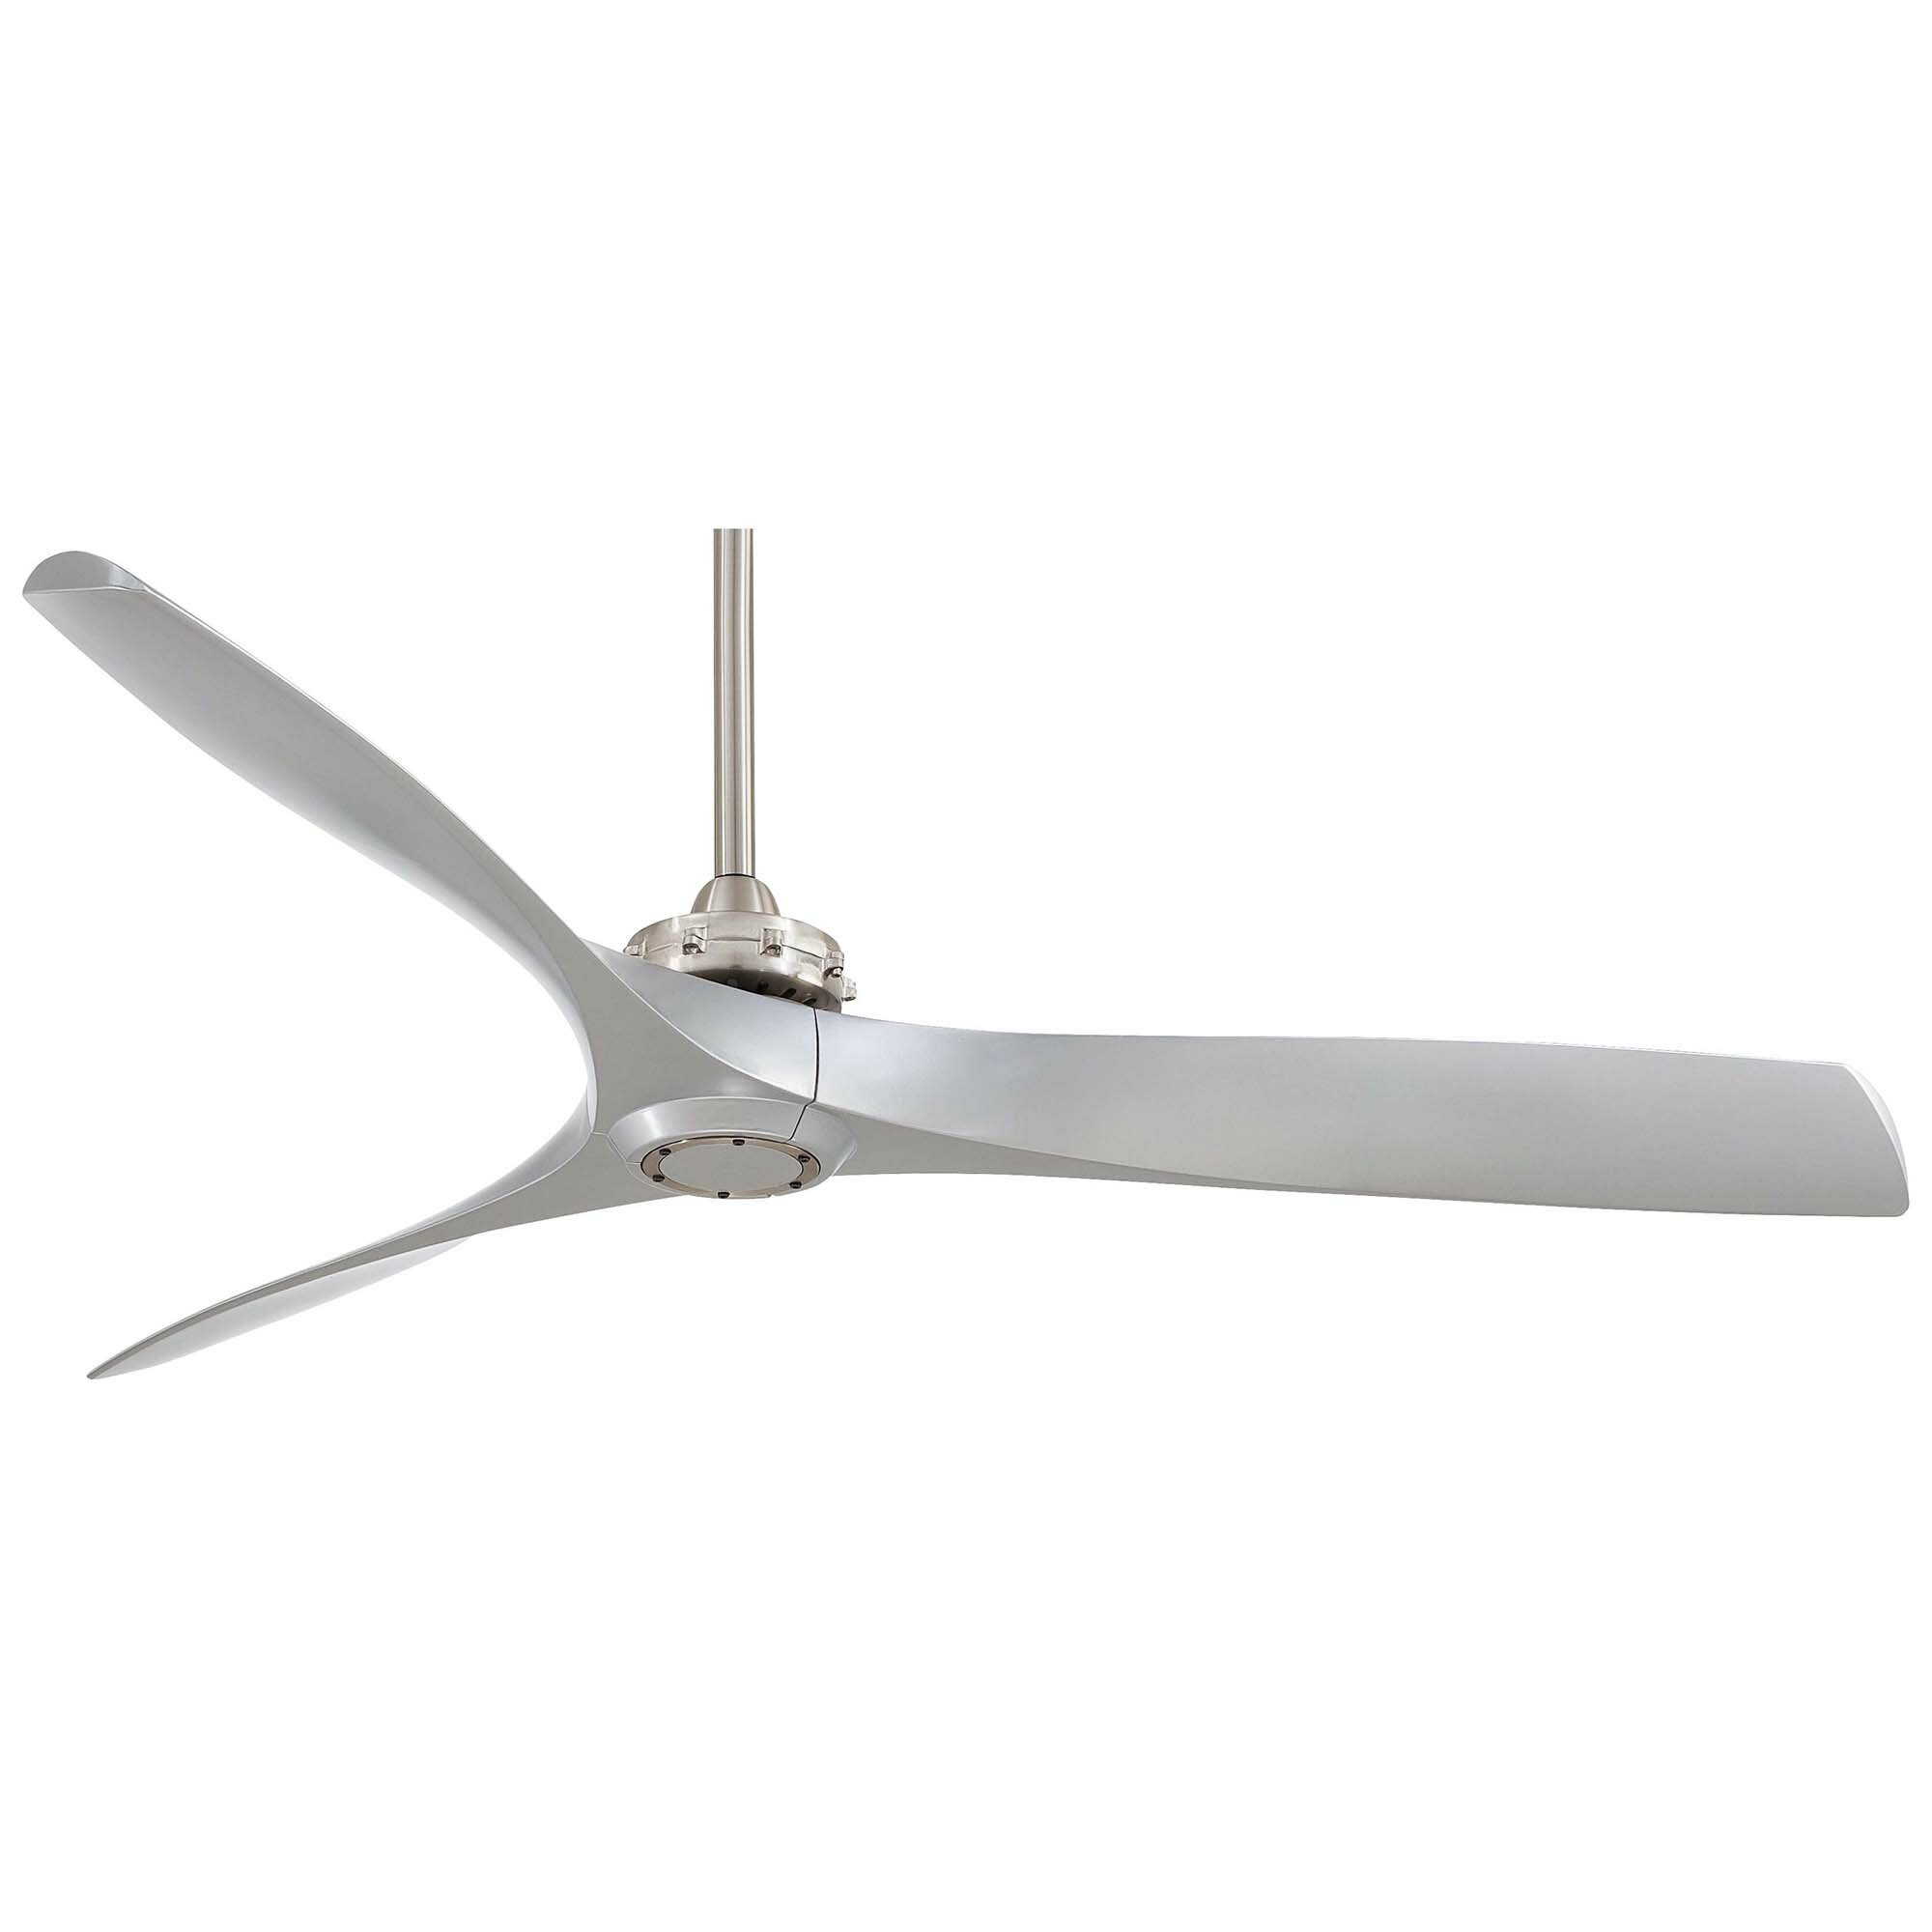 Minka Aire 60 Aviation 3 Blade Ceiling Fan with Handheld Remote